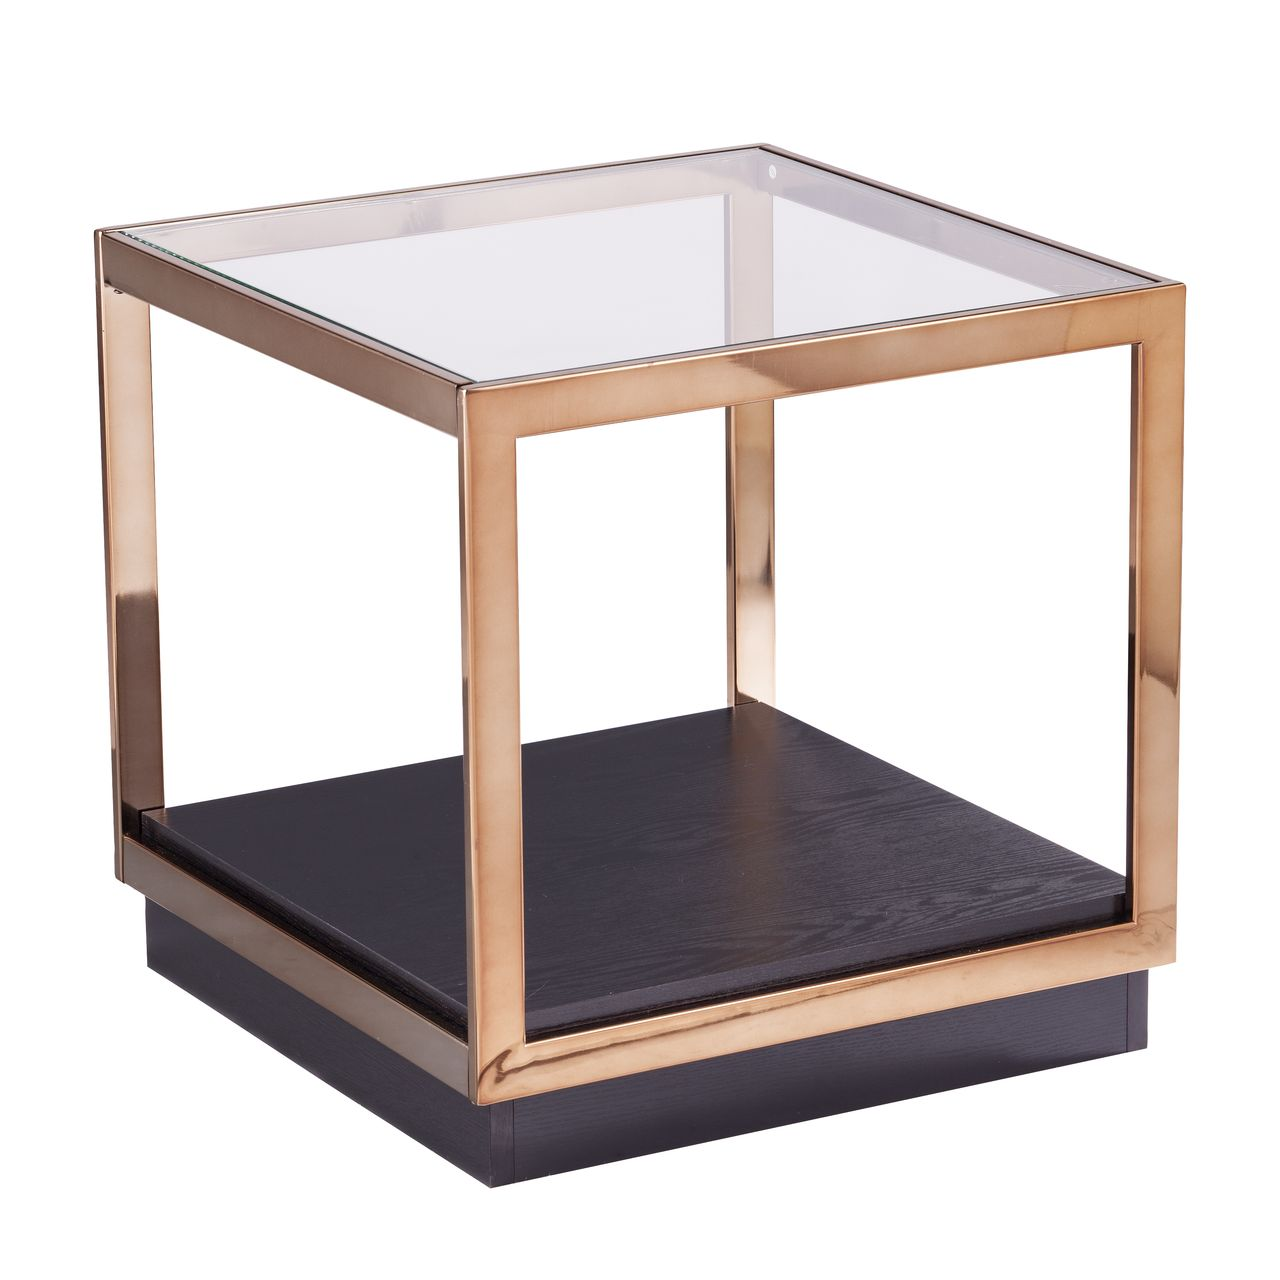 SEI Lexina Glass-Top Storage End Table in Champagne / Black